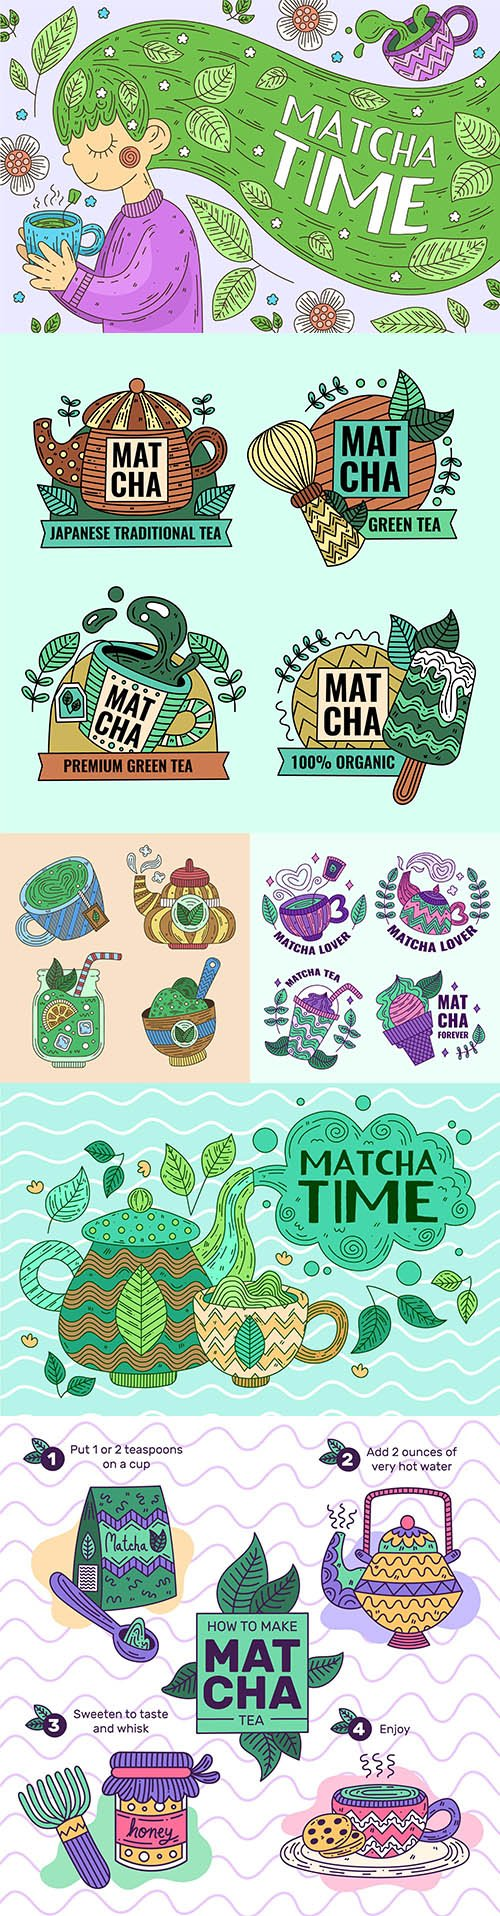 Delicious desserts and green tea match illustration